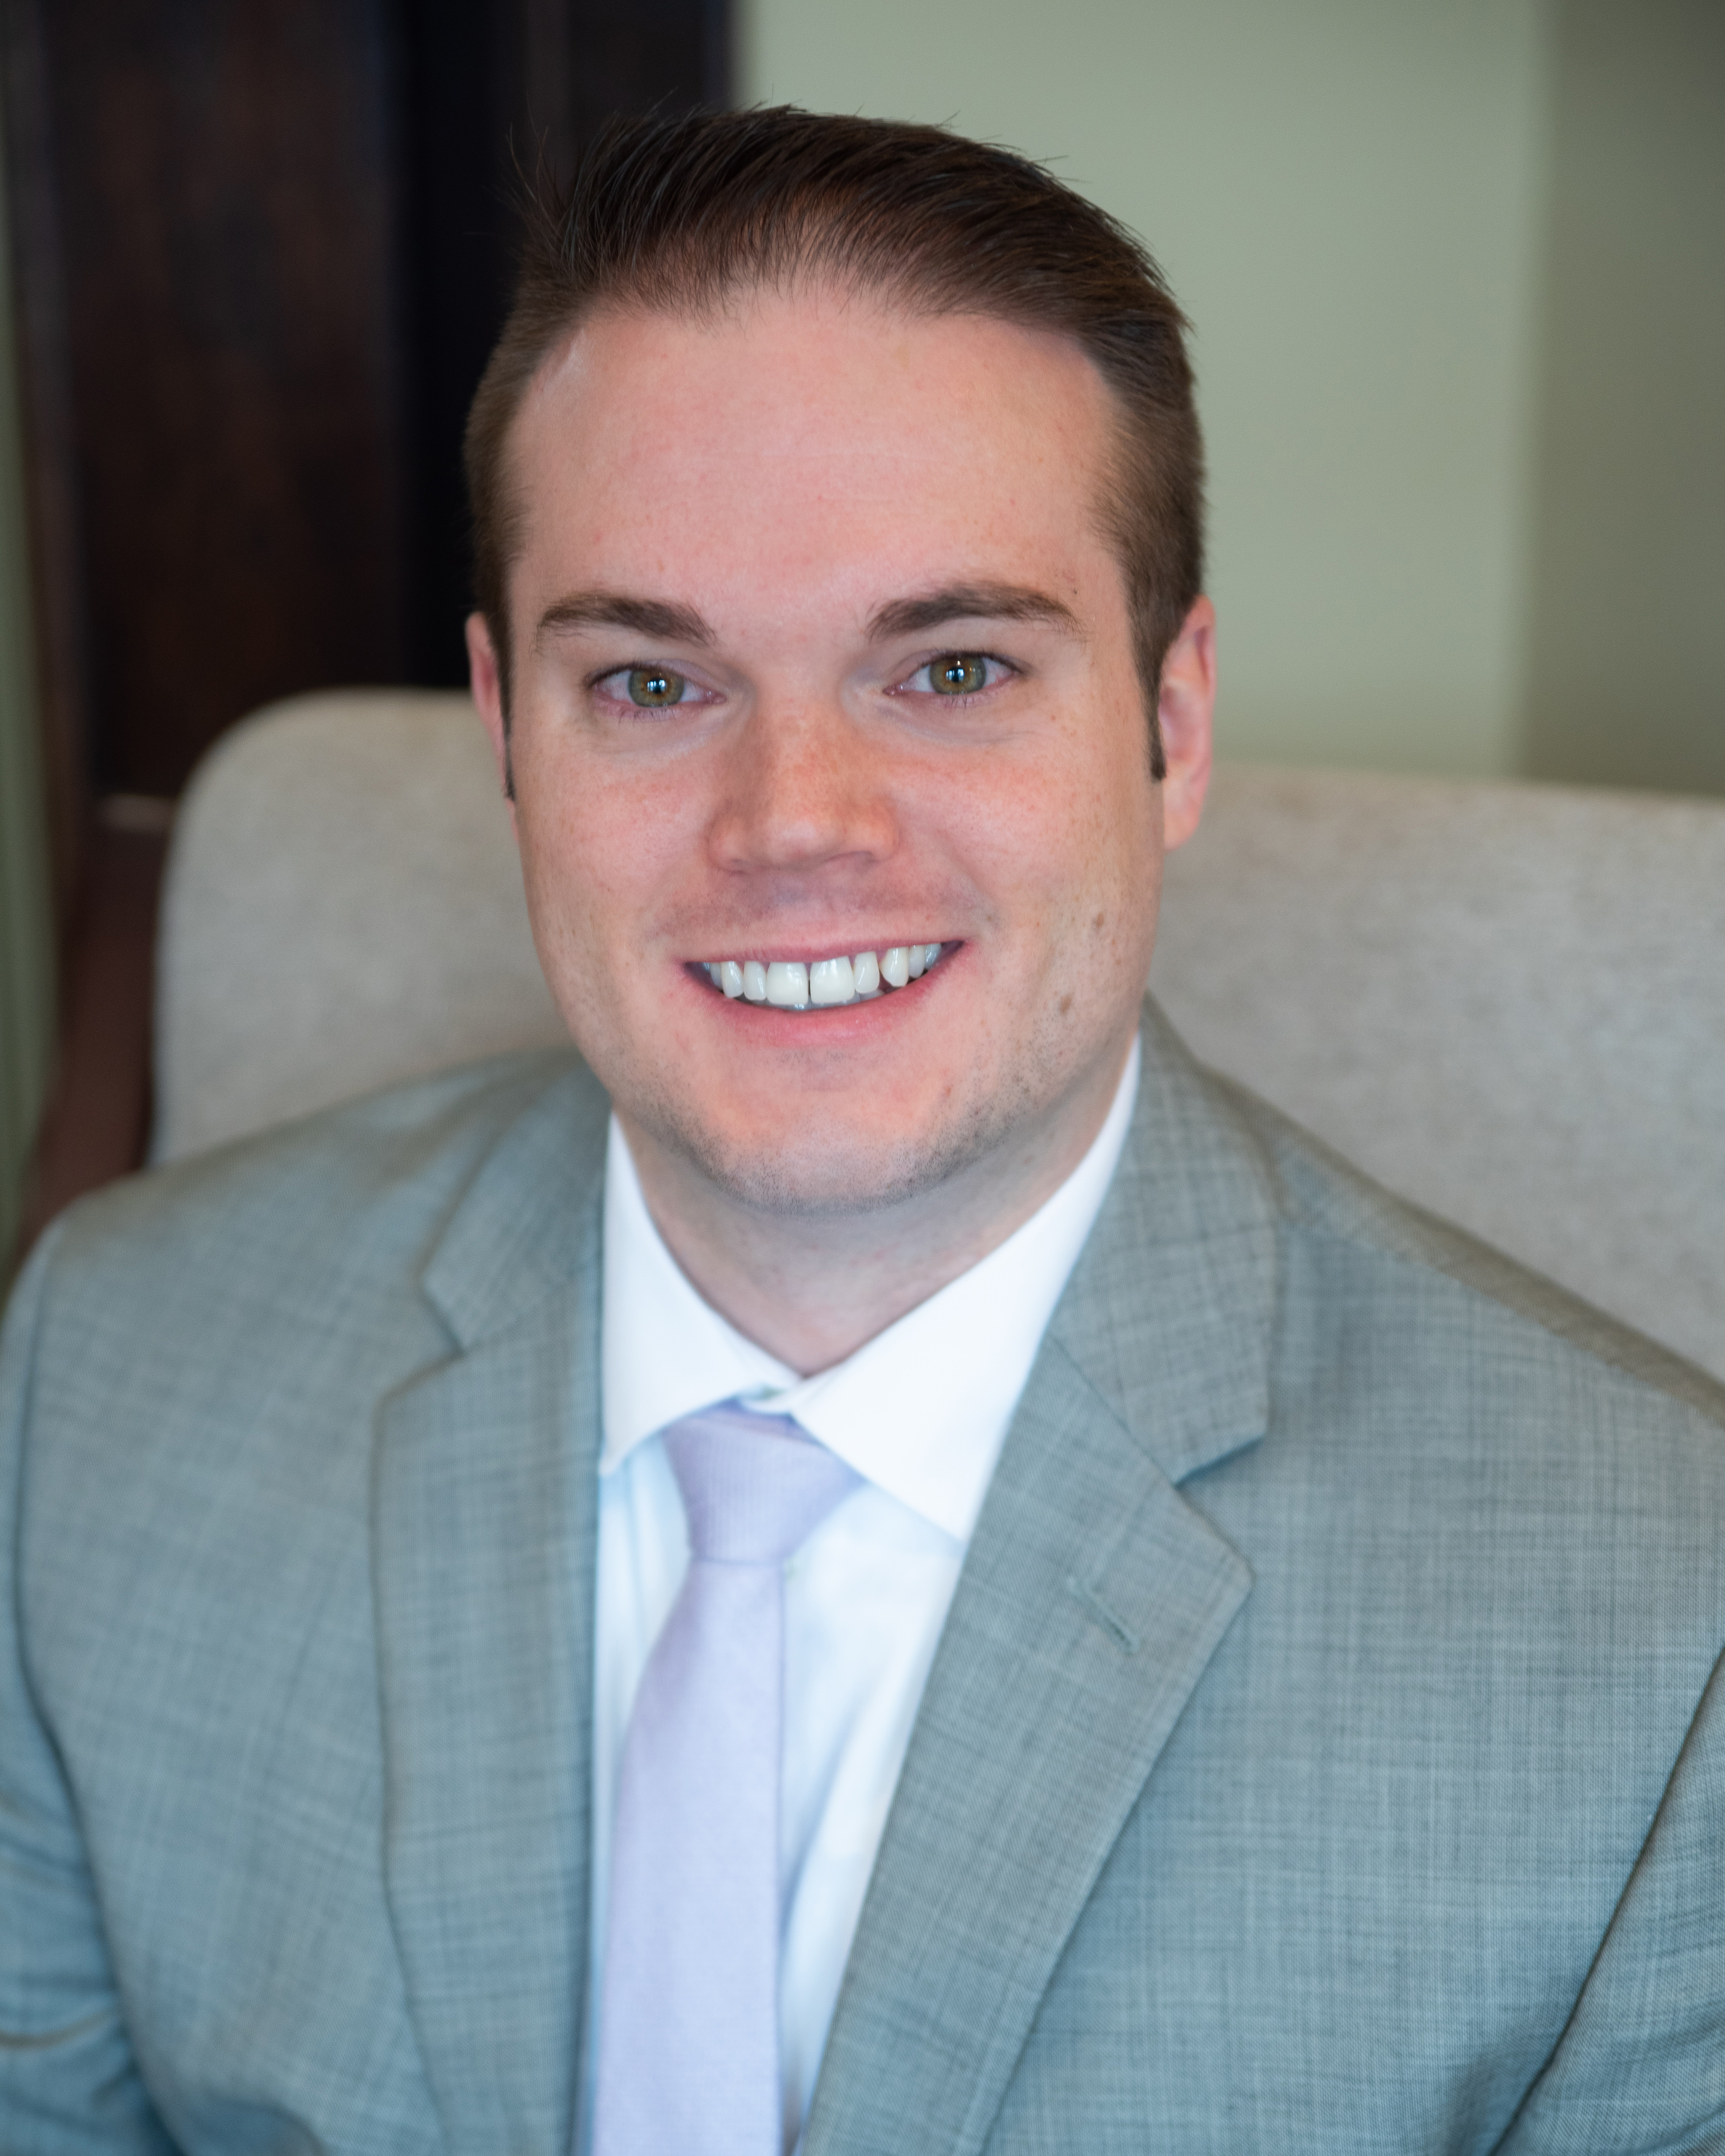 Colton Groome is excited for new brain power behind the scenes. Matt D. is head of investment anlysis and product selection for our investment platforms, helping Colton Groome reach a new level of in-house services.